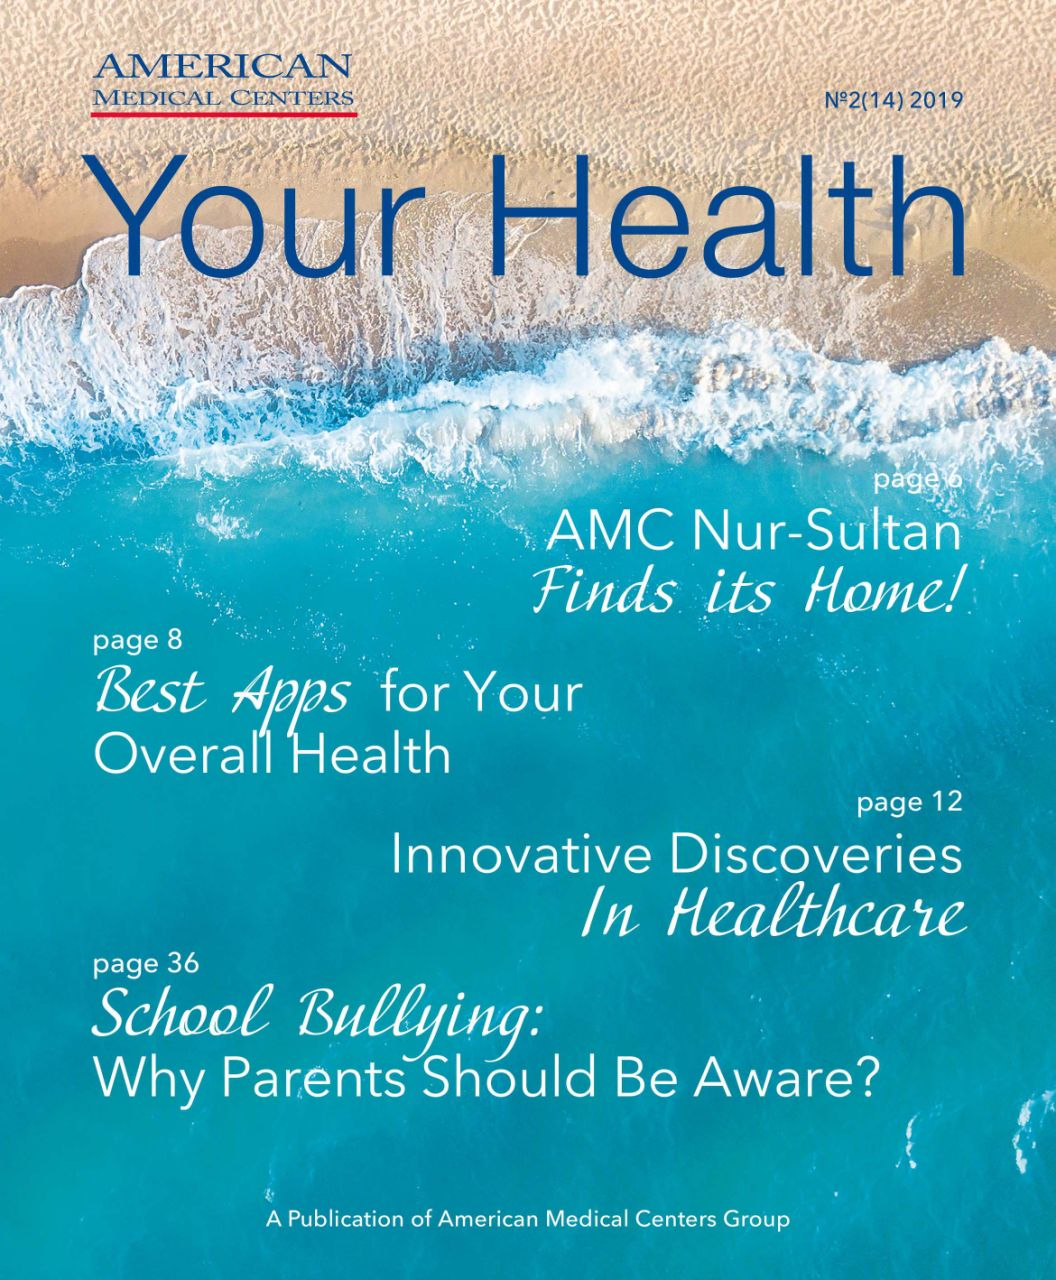 Your 24/7 Urgent Care Clinic - American Medical Centers Almaty